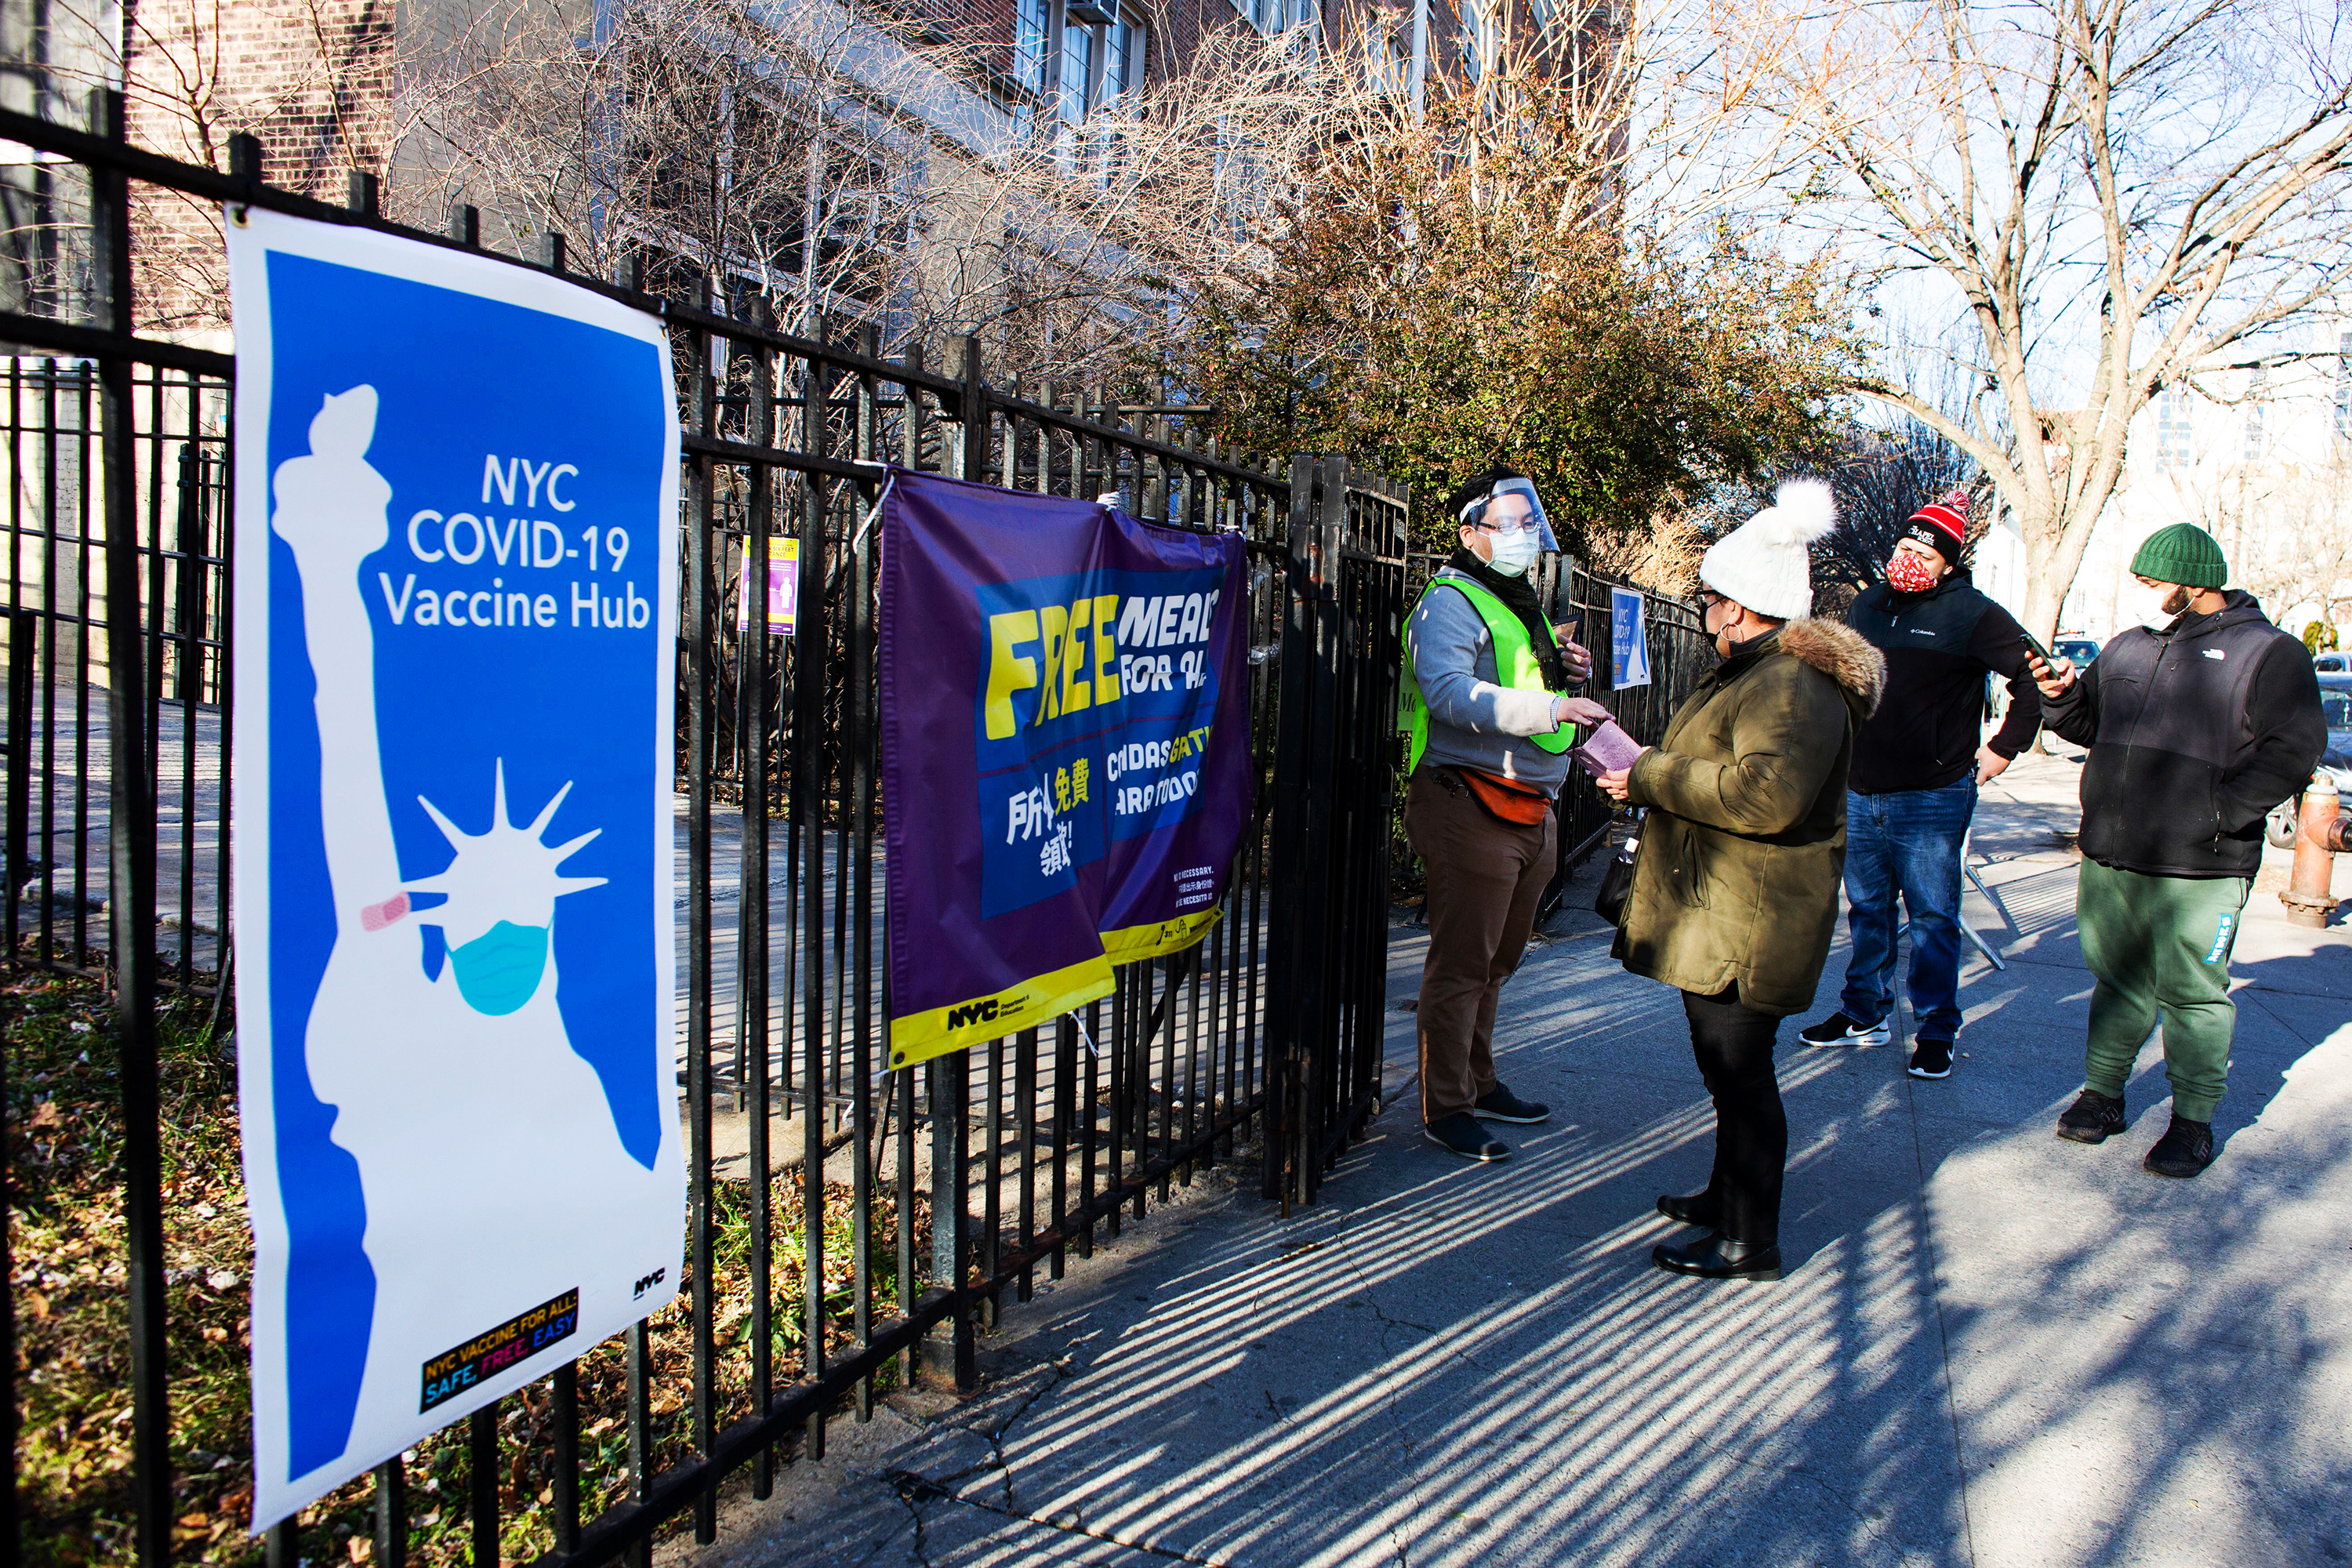 "A sign on a fence lining a sidewalk features a silhouette of the Statue of Liberty wearing a breathing mask and the words ""NYC Covid-19 Vaccine Hub."" People stand nearby."